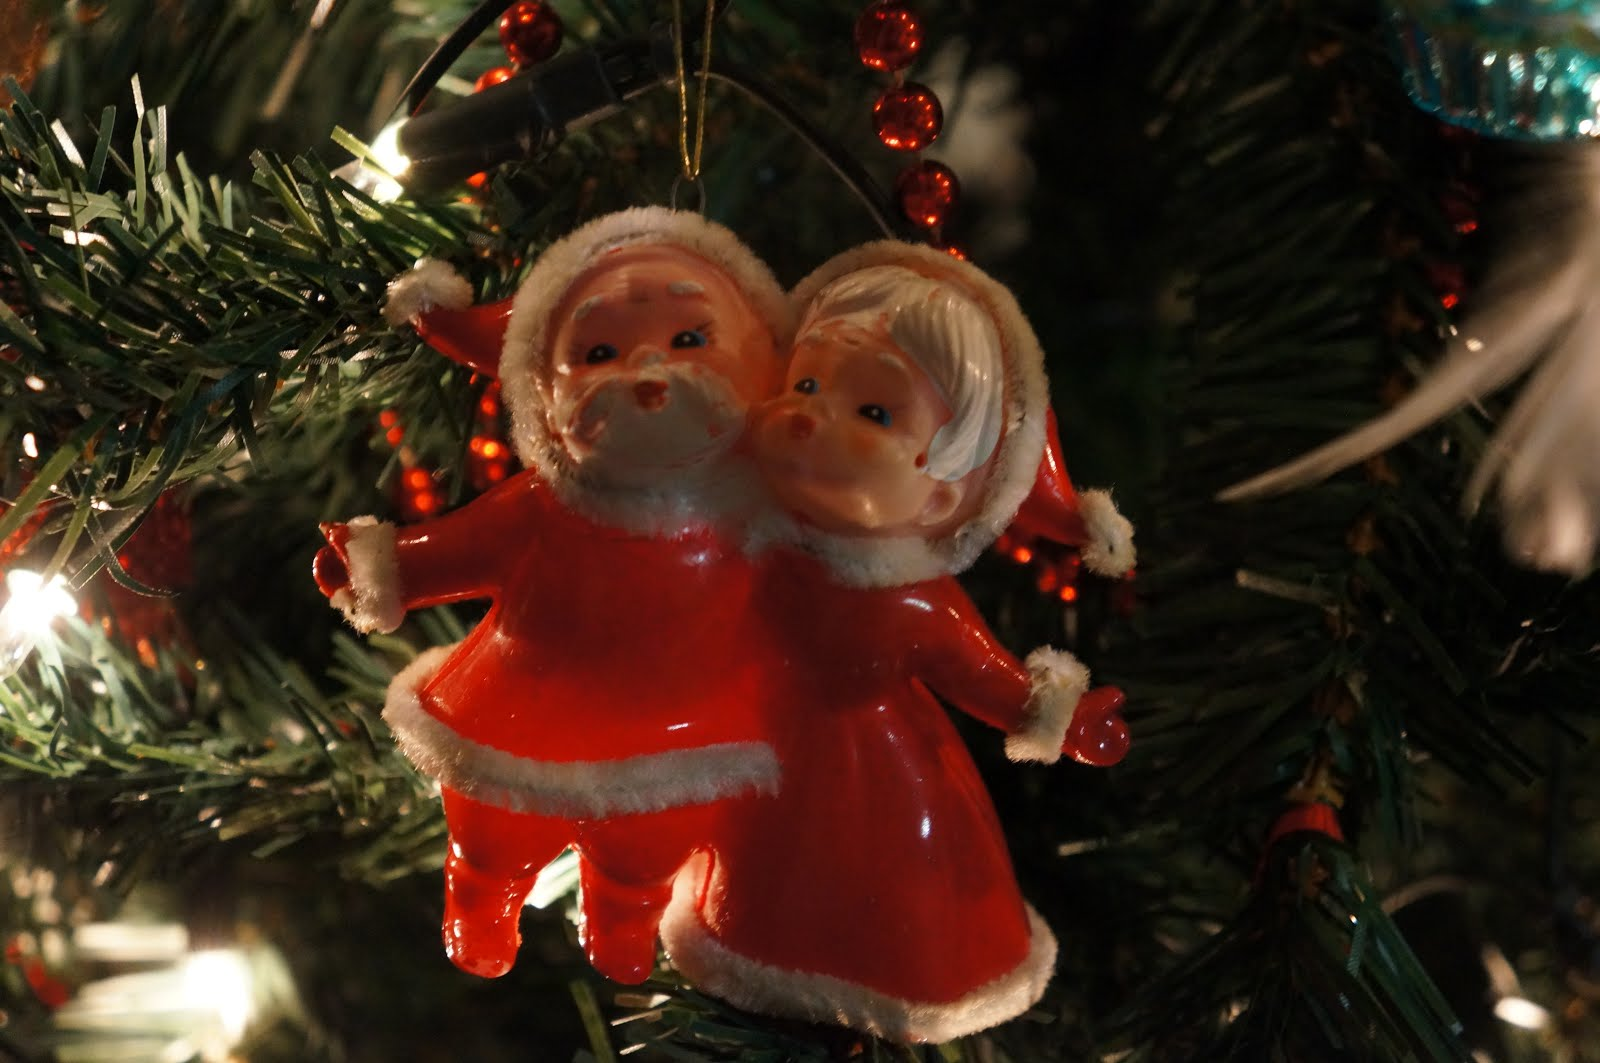 Mr and mrs christmas tree decoration - Mr And Mrs Claus Vintage Christmas Tree Decoration Ornament 1980s 80s Nostalgia